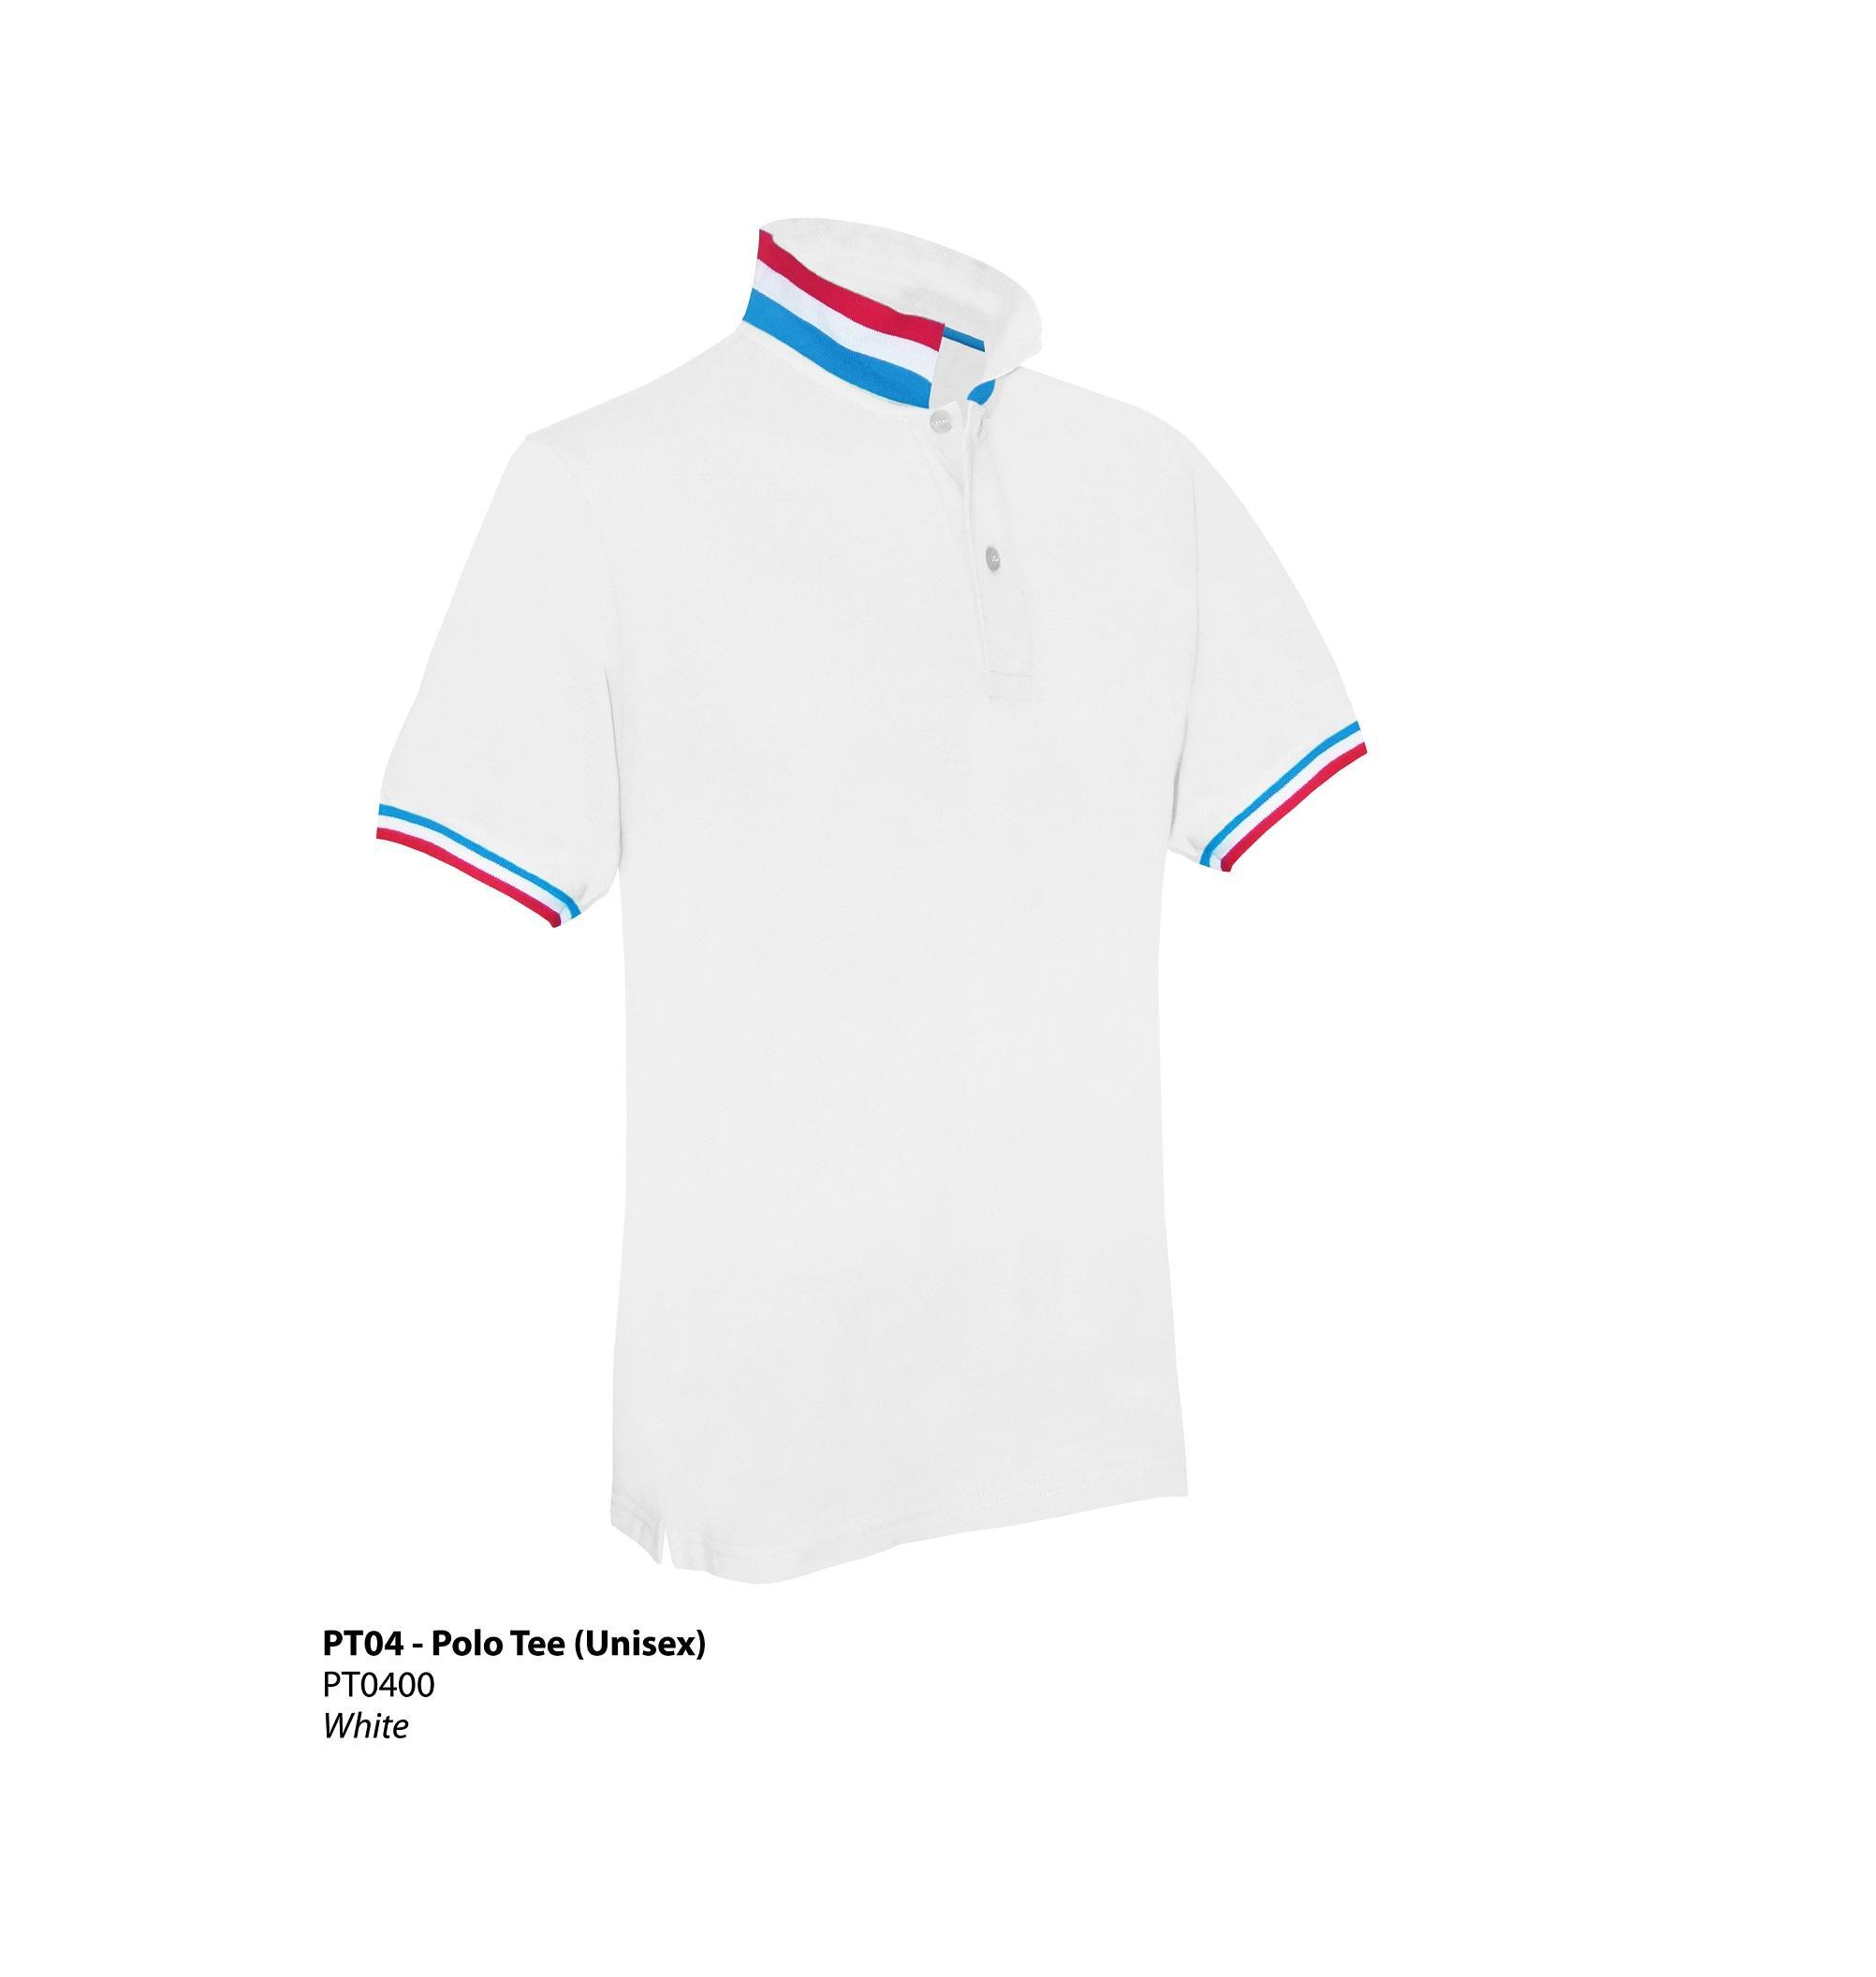 e2689b78c041 Home   Kings   Polo Tee   POLO TEE PT04 (Stripes Collar And Cuffs) – 6  Colors (Unisex)